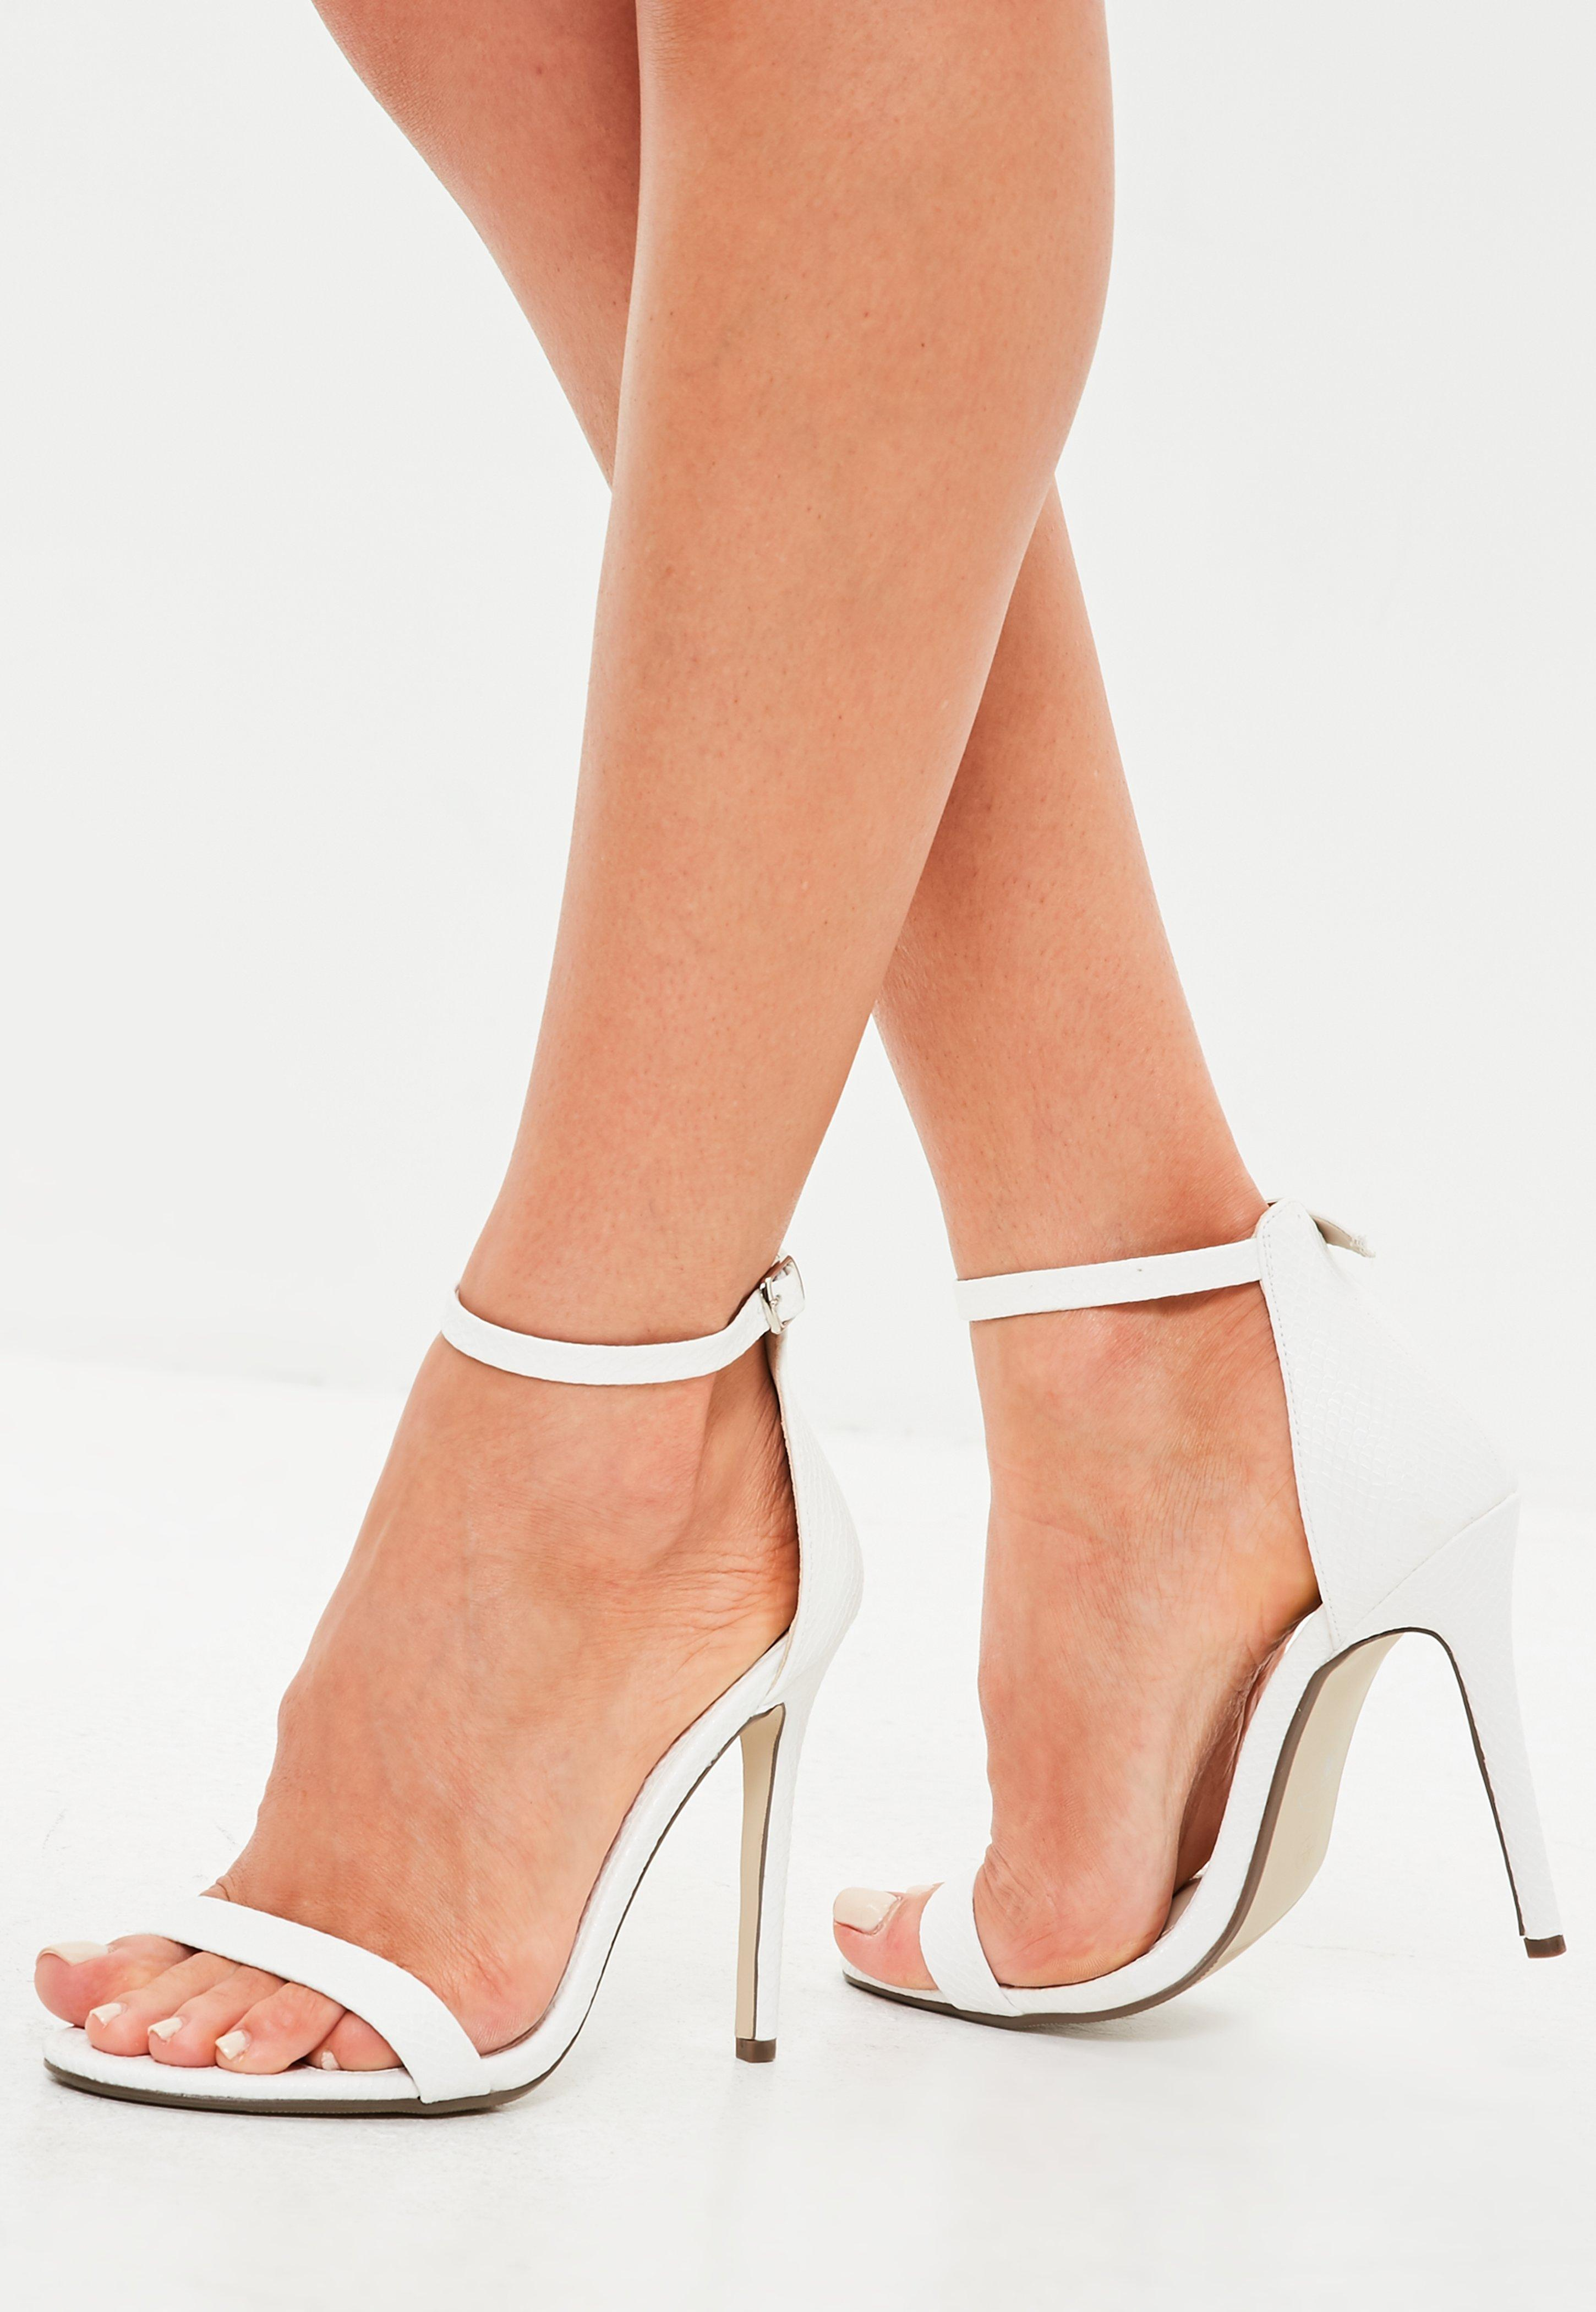 752bfca714d Lyst - Missguided White Flat Two Strap Barely There Sandals in White